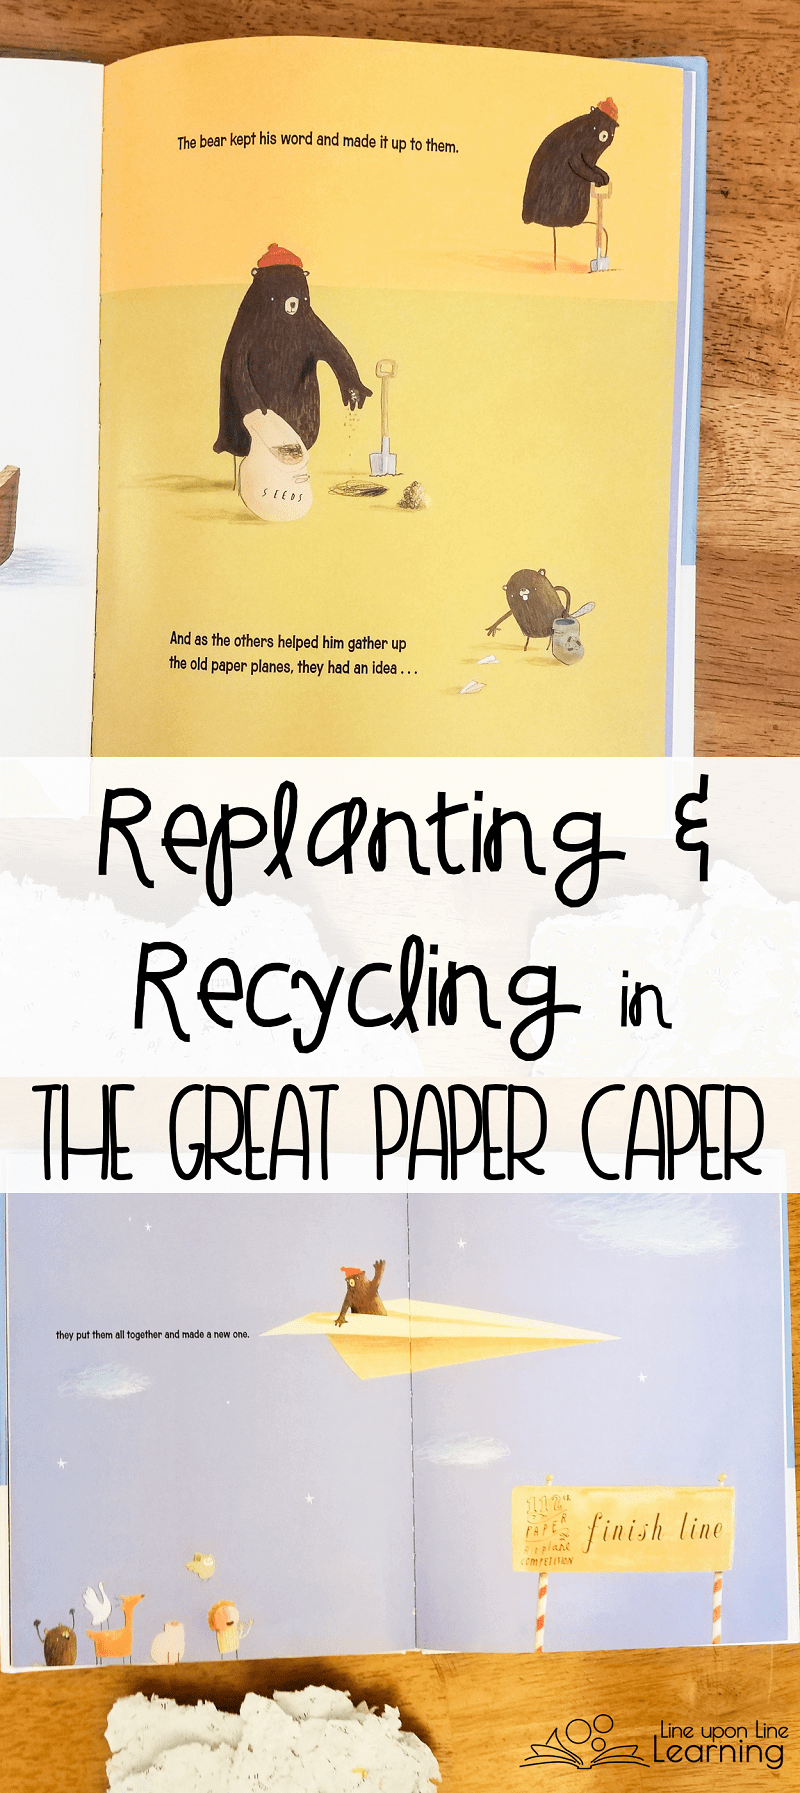 The Great Paper Caper is a great book to talk about replanting trees and recycling paper. It's also a spring board for us to try our own recycled paper.